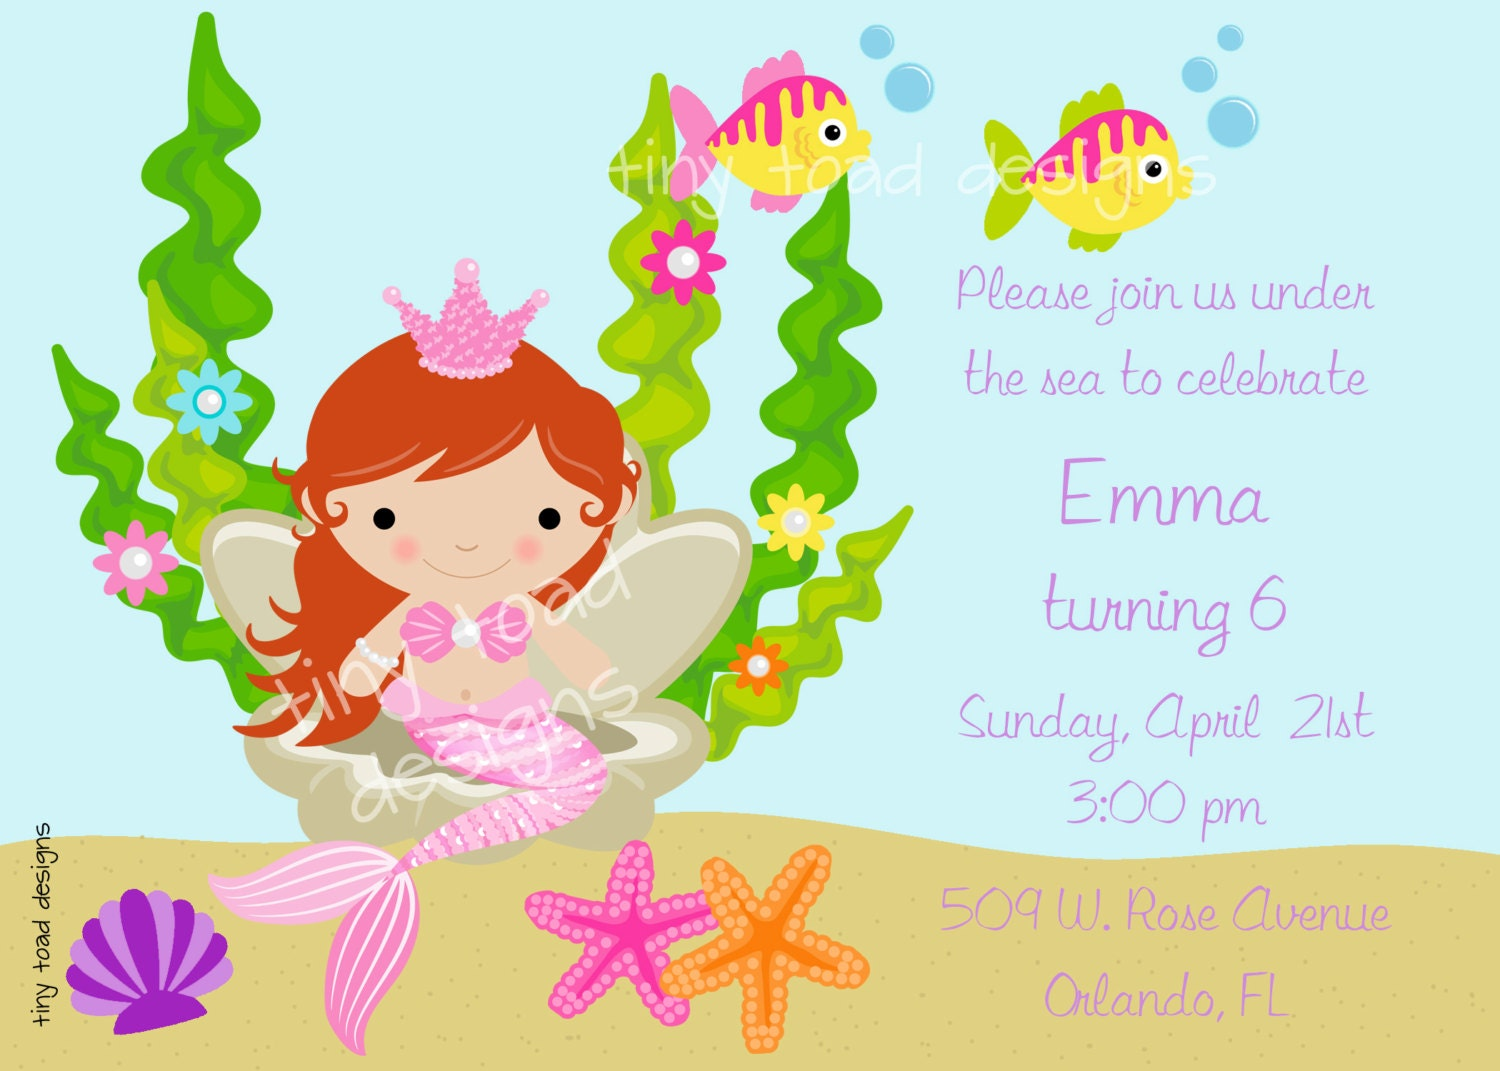 Mermaid Under the Sea Birthday Party Invitation DIY